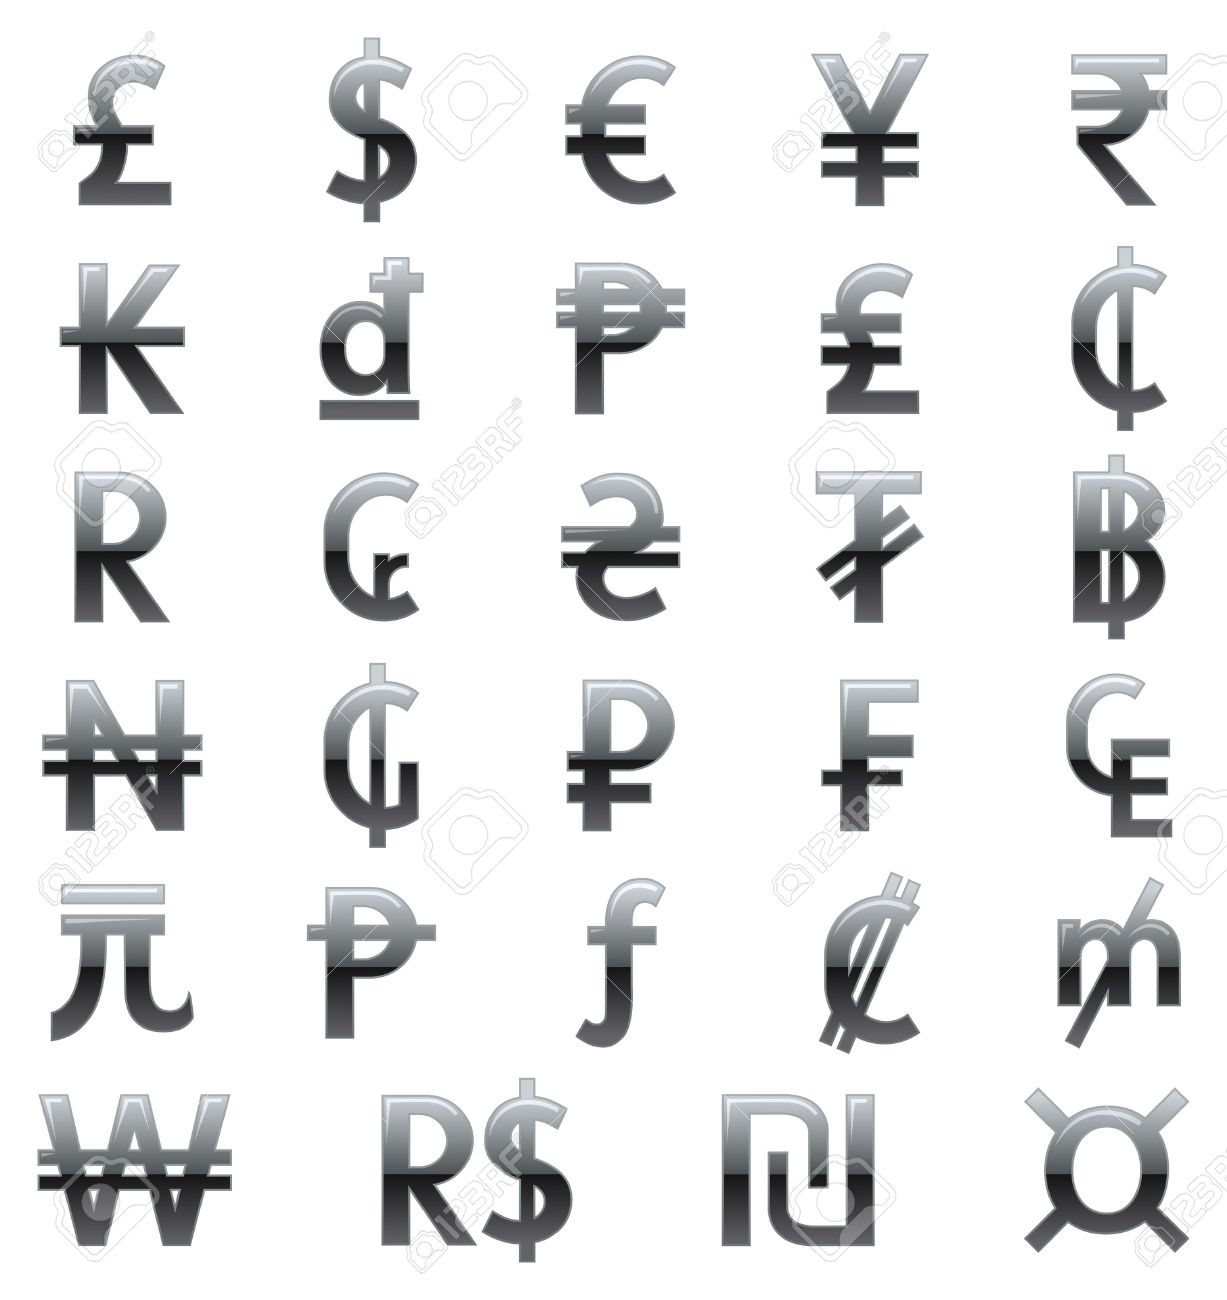 Currency Symbols Of The World Royalty Free Cliparts Vectors And